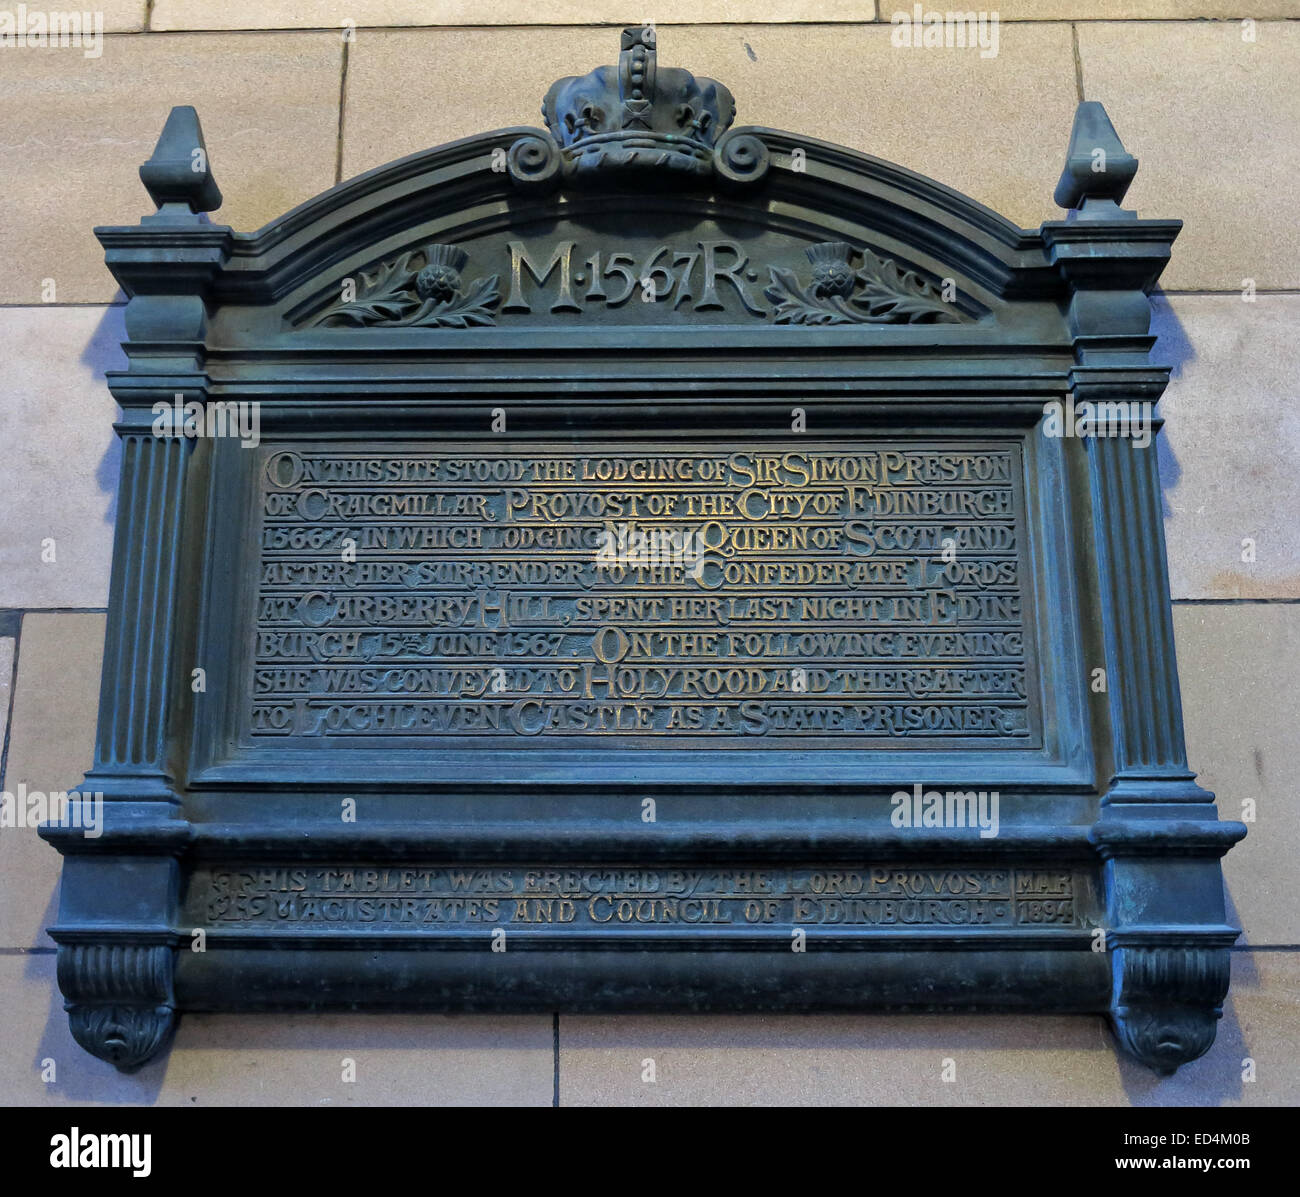 M1567R Plaque for Mary, Queen of Scotland - Stock Image